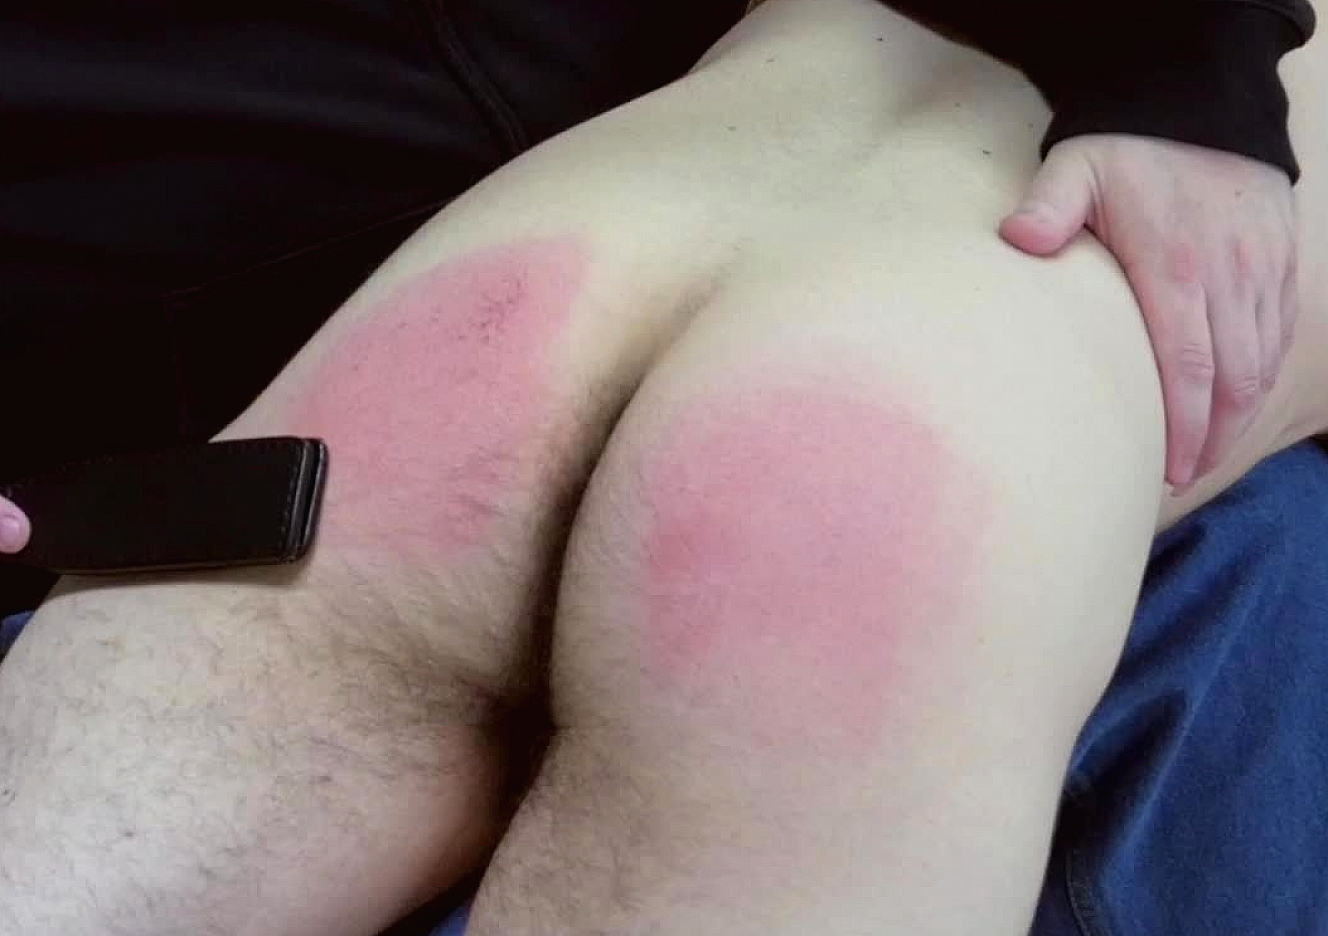 content/161128101-pauls-first-spanking/0.jpg